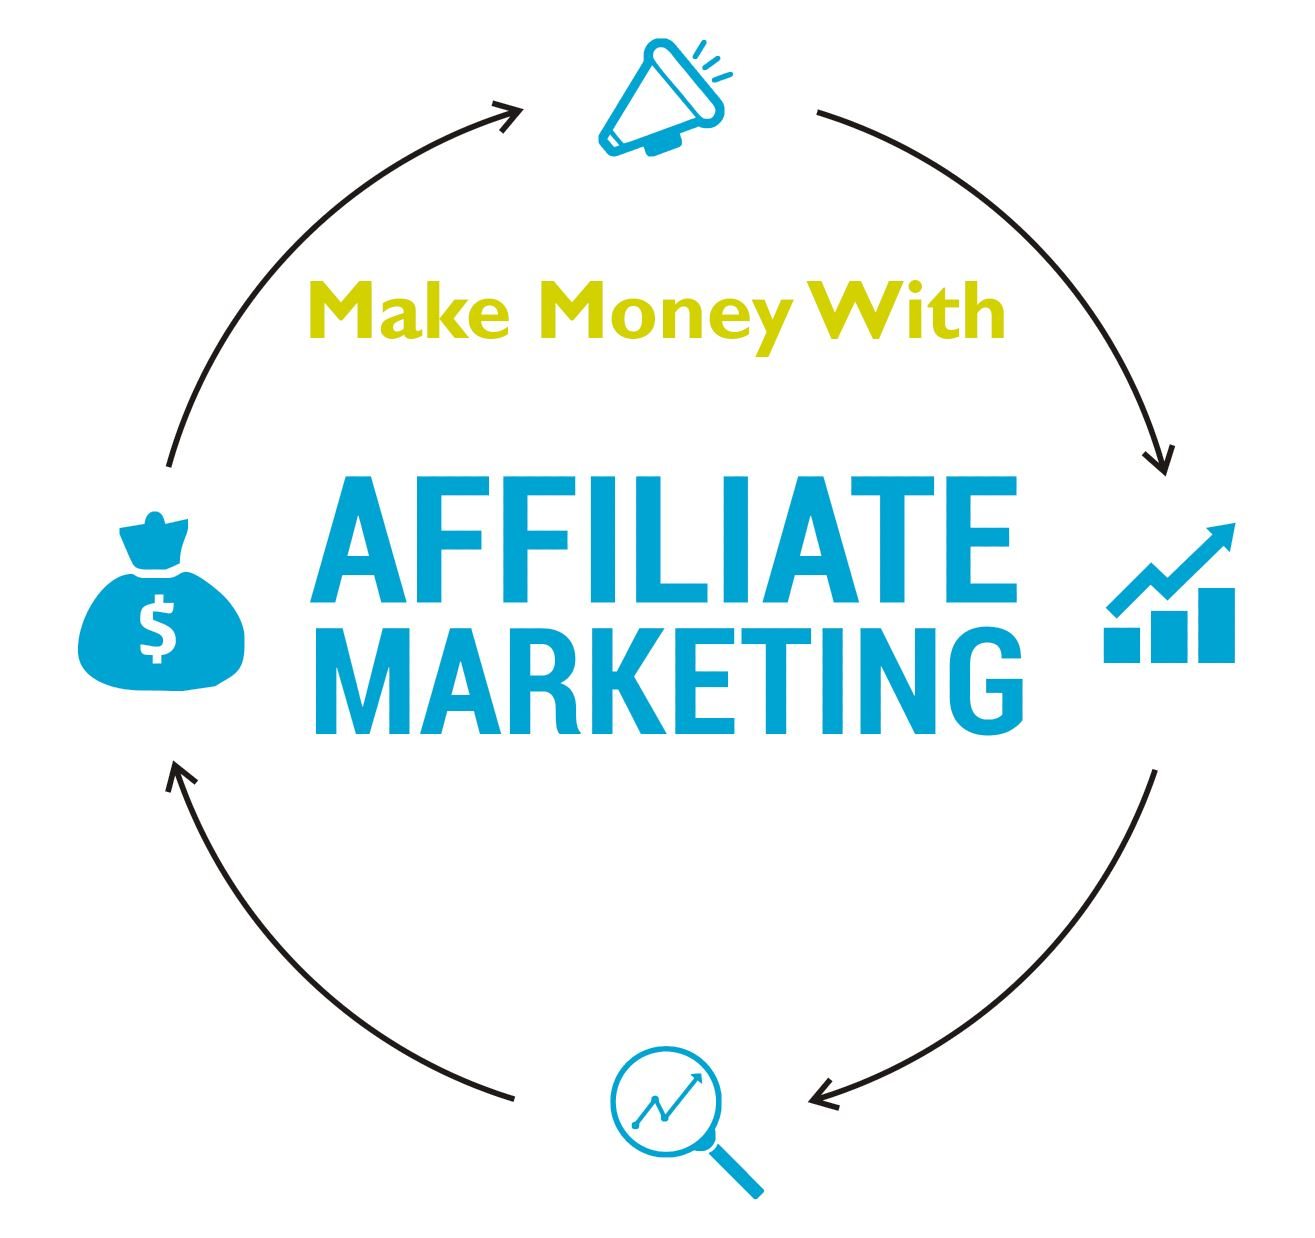 learnedgold.com - Affiliate Marketing - Ultimate Guide To Working From Home